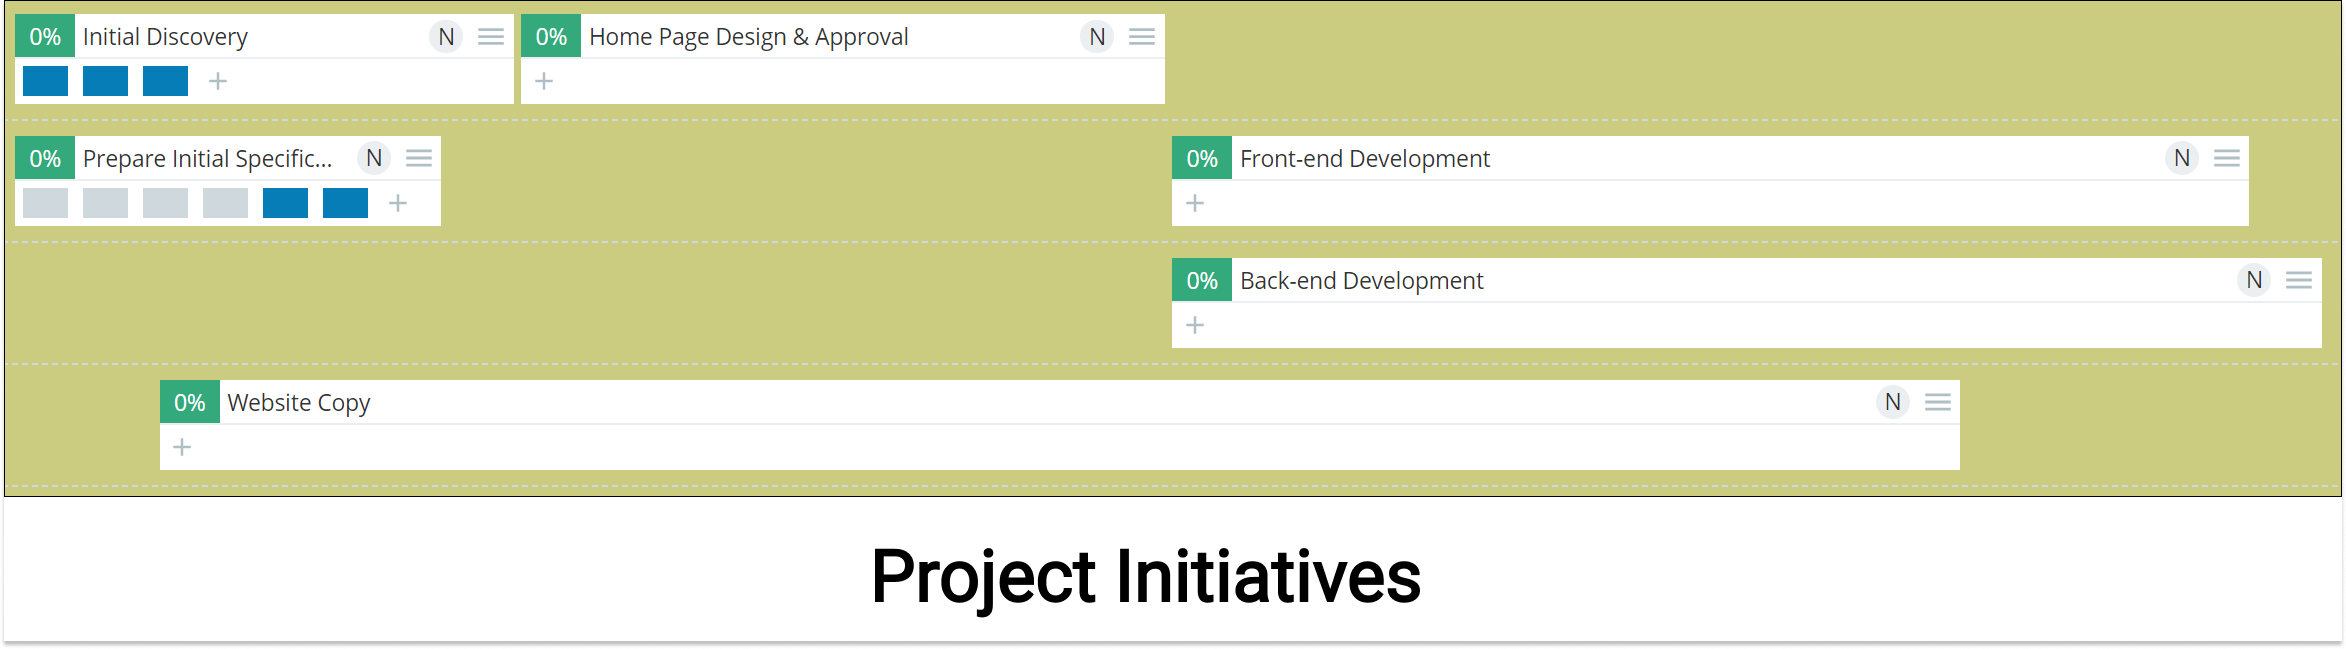 projects-initiatives